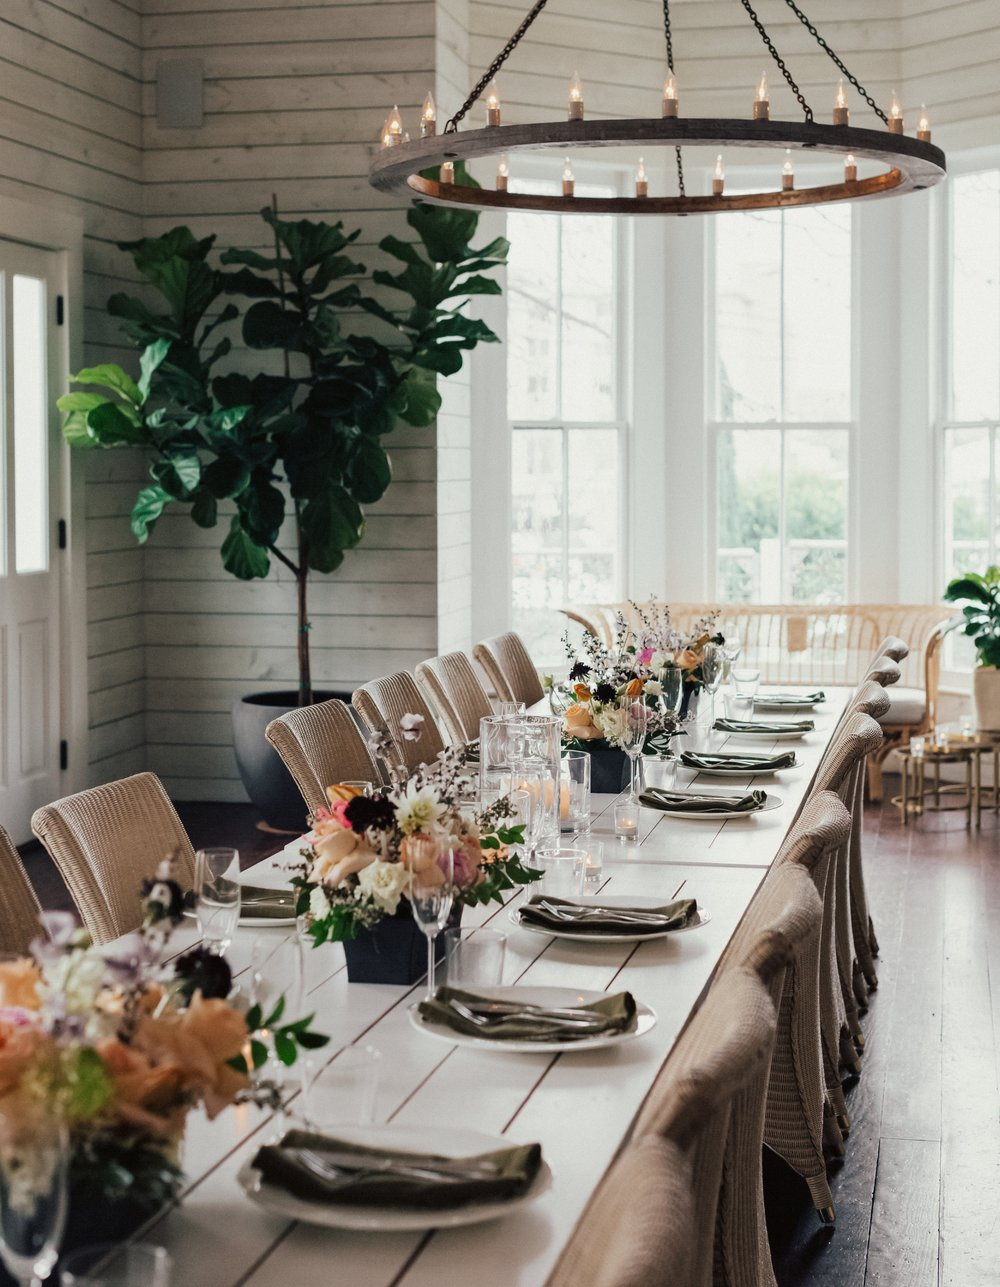 Event pieces - All-sided table scapes, designed to your color palette.Starting at $100.00.Photo: Leeann Funk Photography.Venue pictured: Thompson + Hanson Garden House